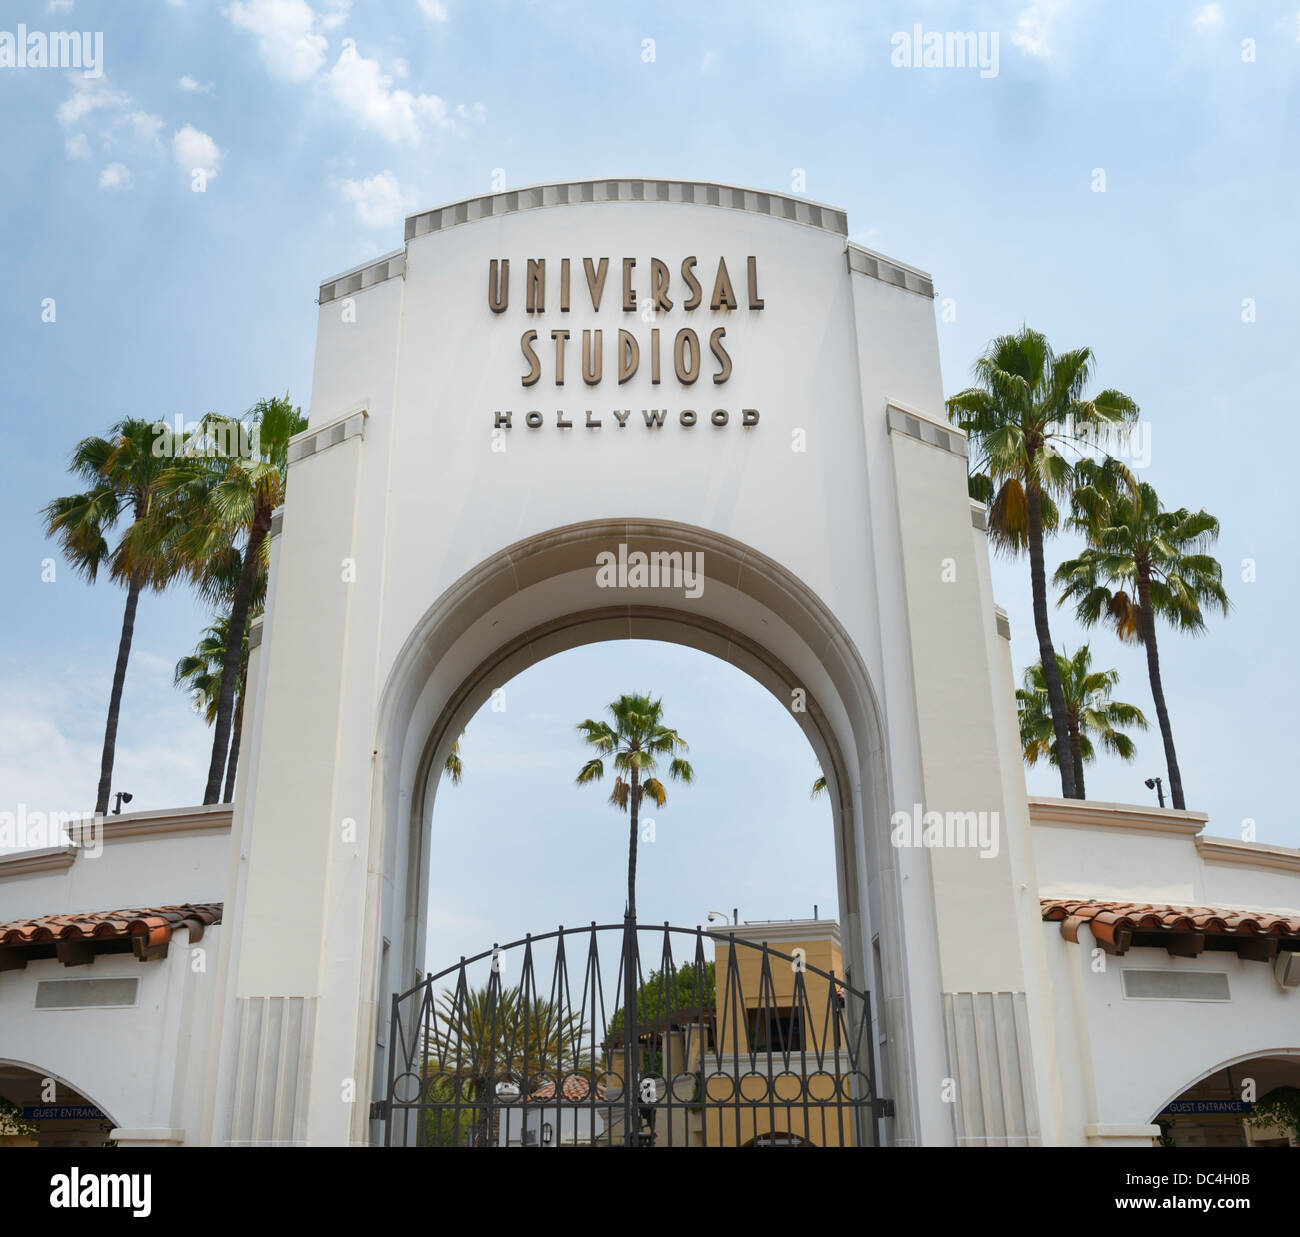 Universal Studios entrance, Hollywood, CA - Stock Image